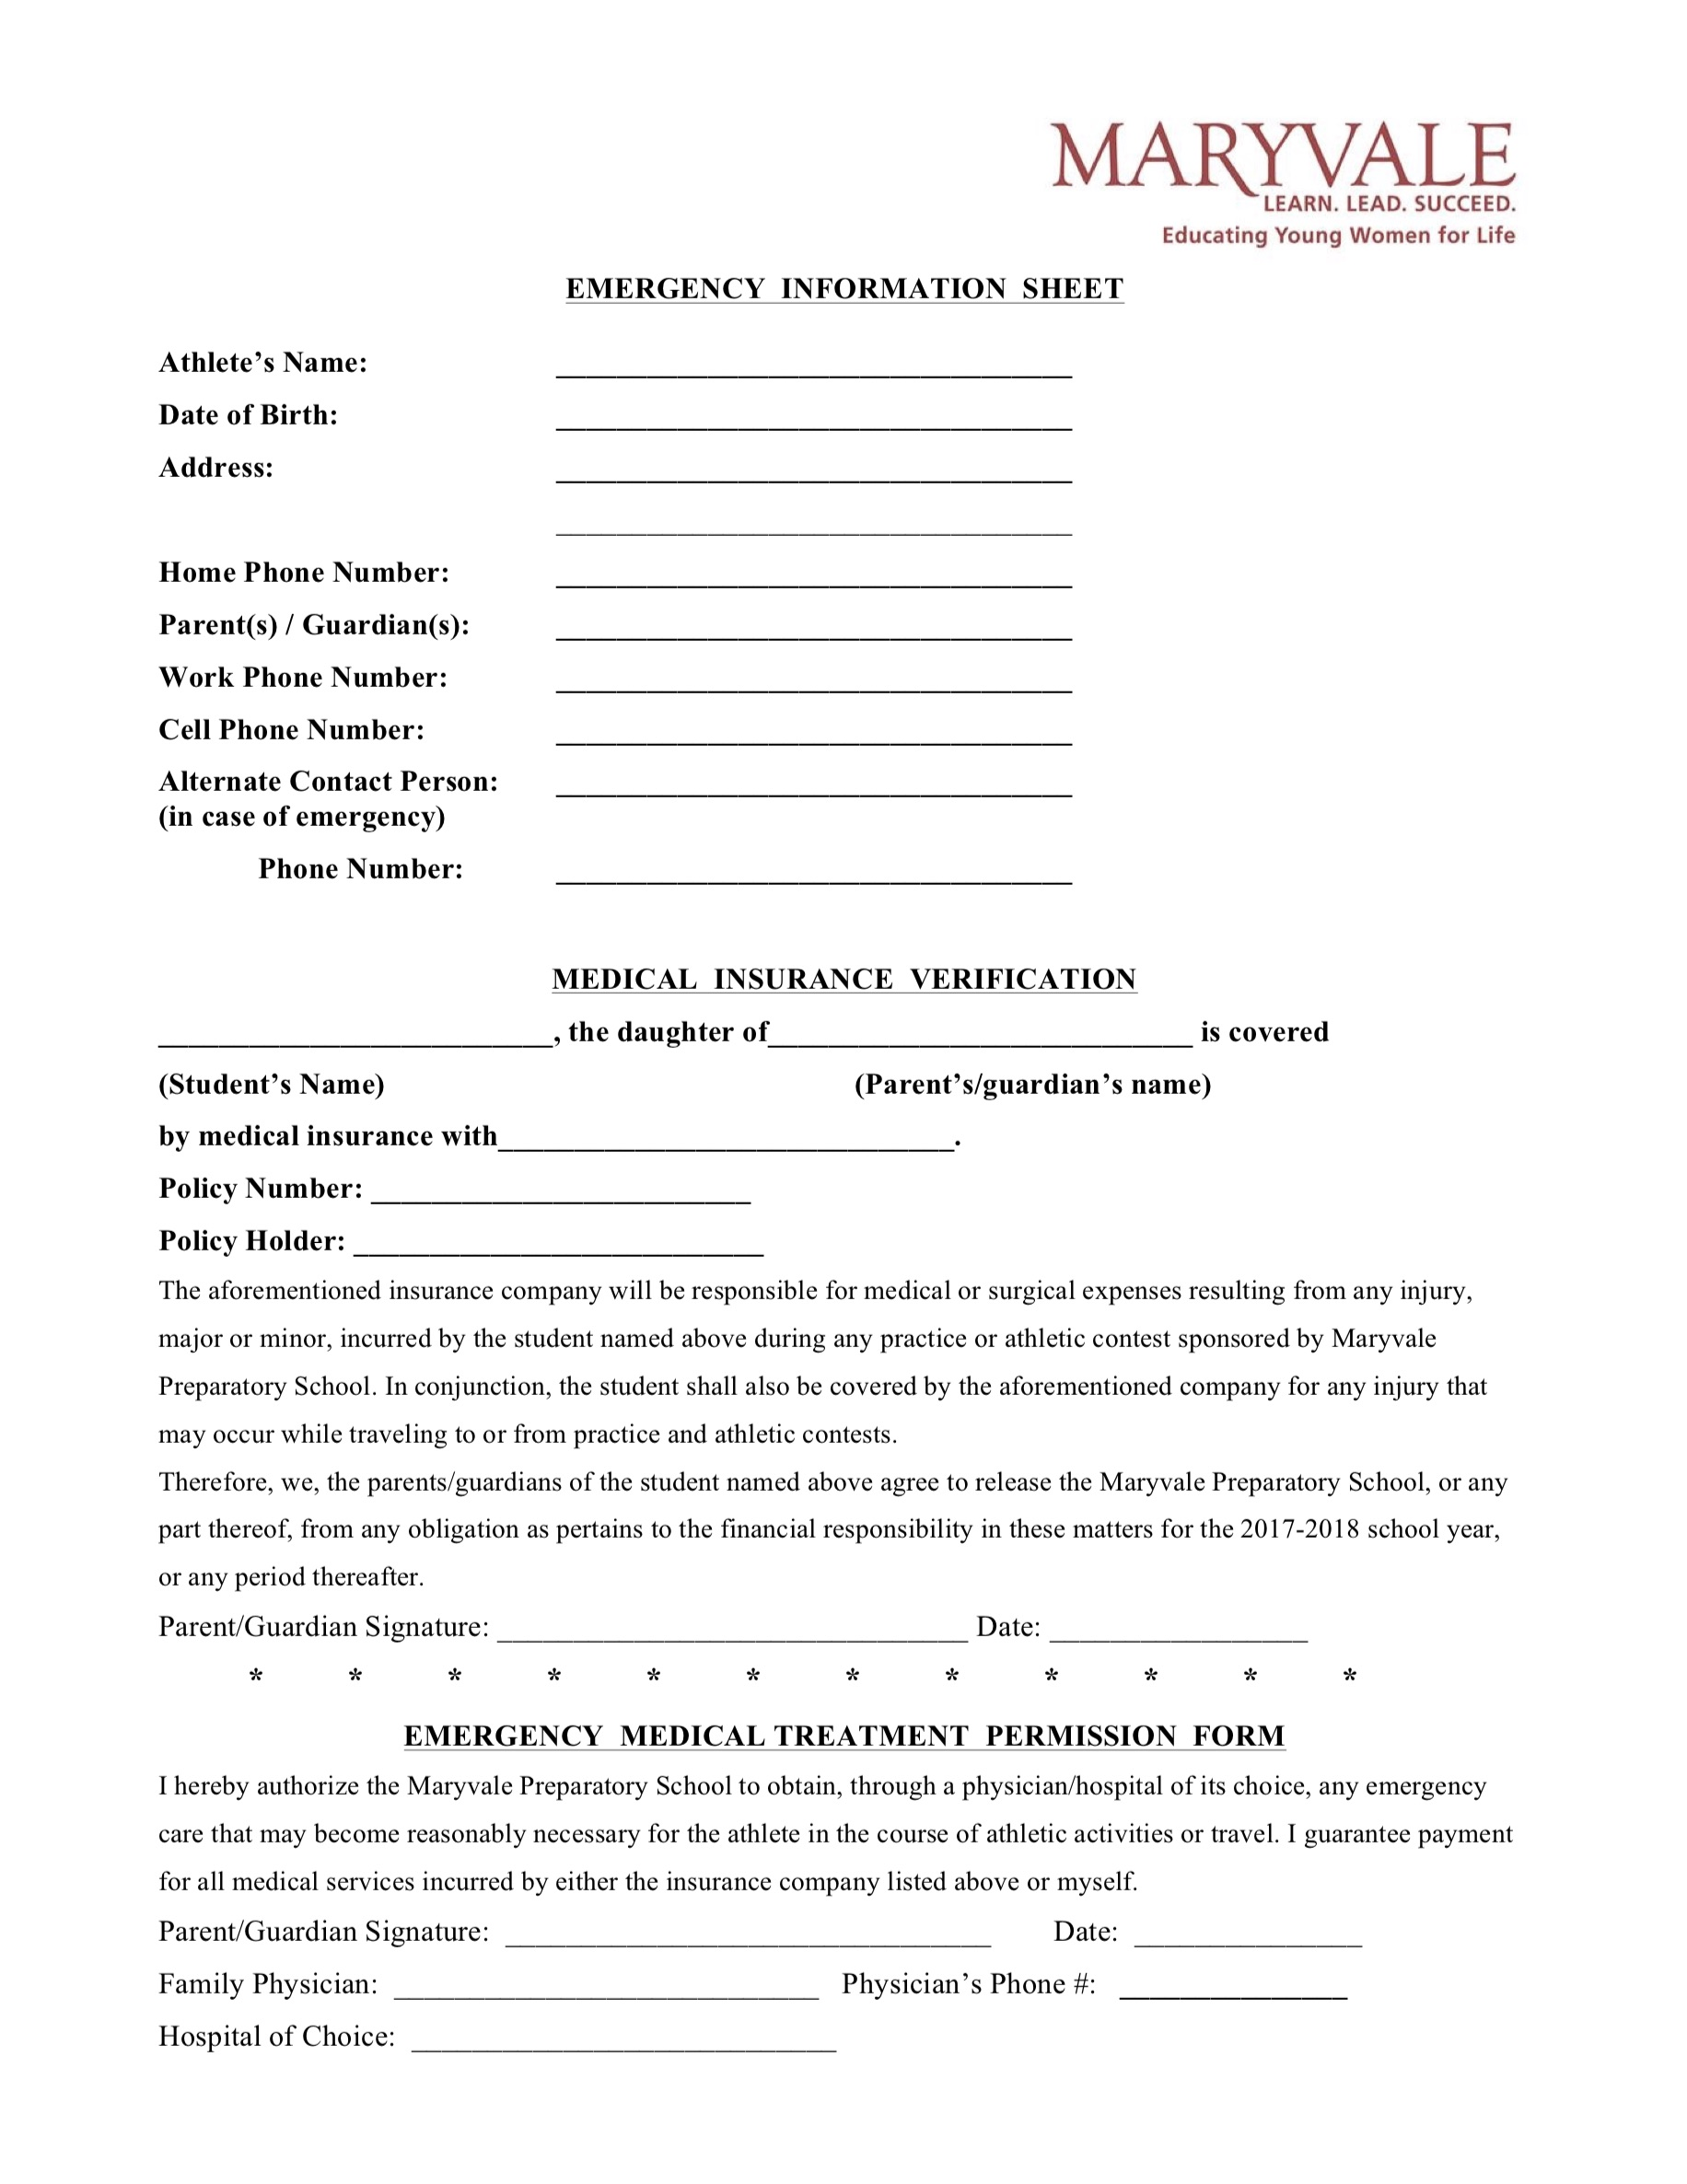 Maryvale Athletic Emergency Contact Form